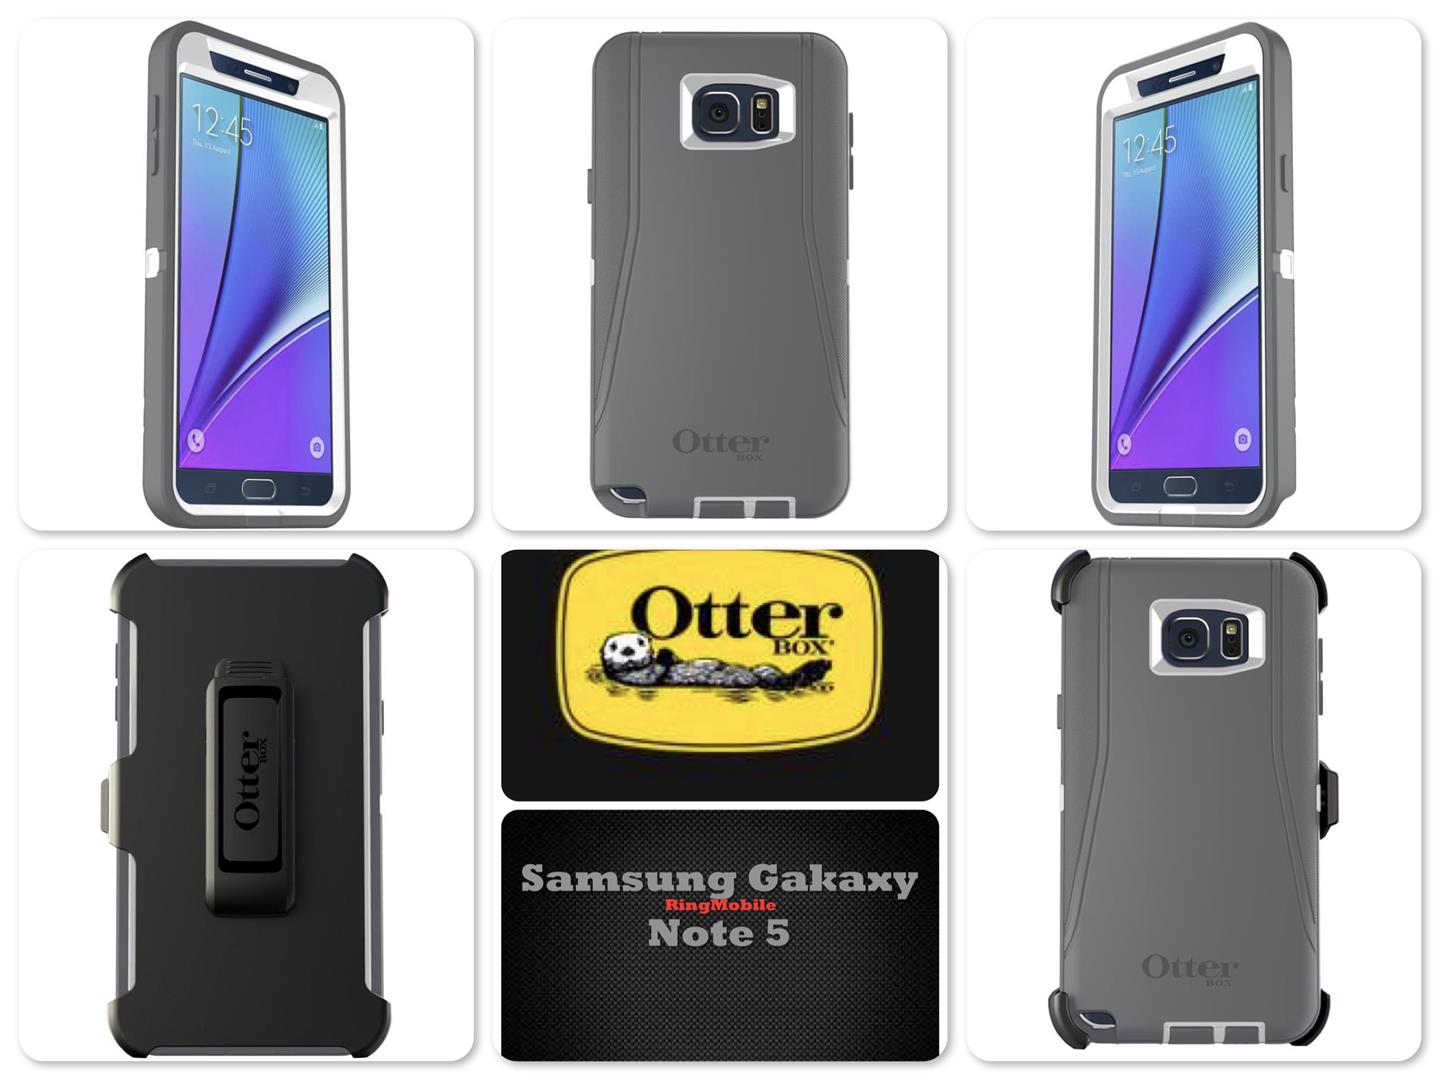 Samsung Galaxy Note 5 Otterbox Defender Series Glacier